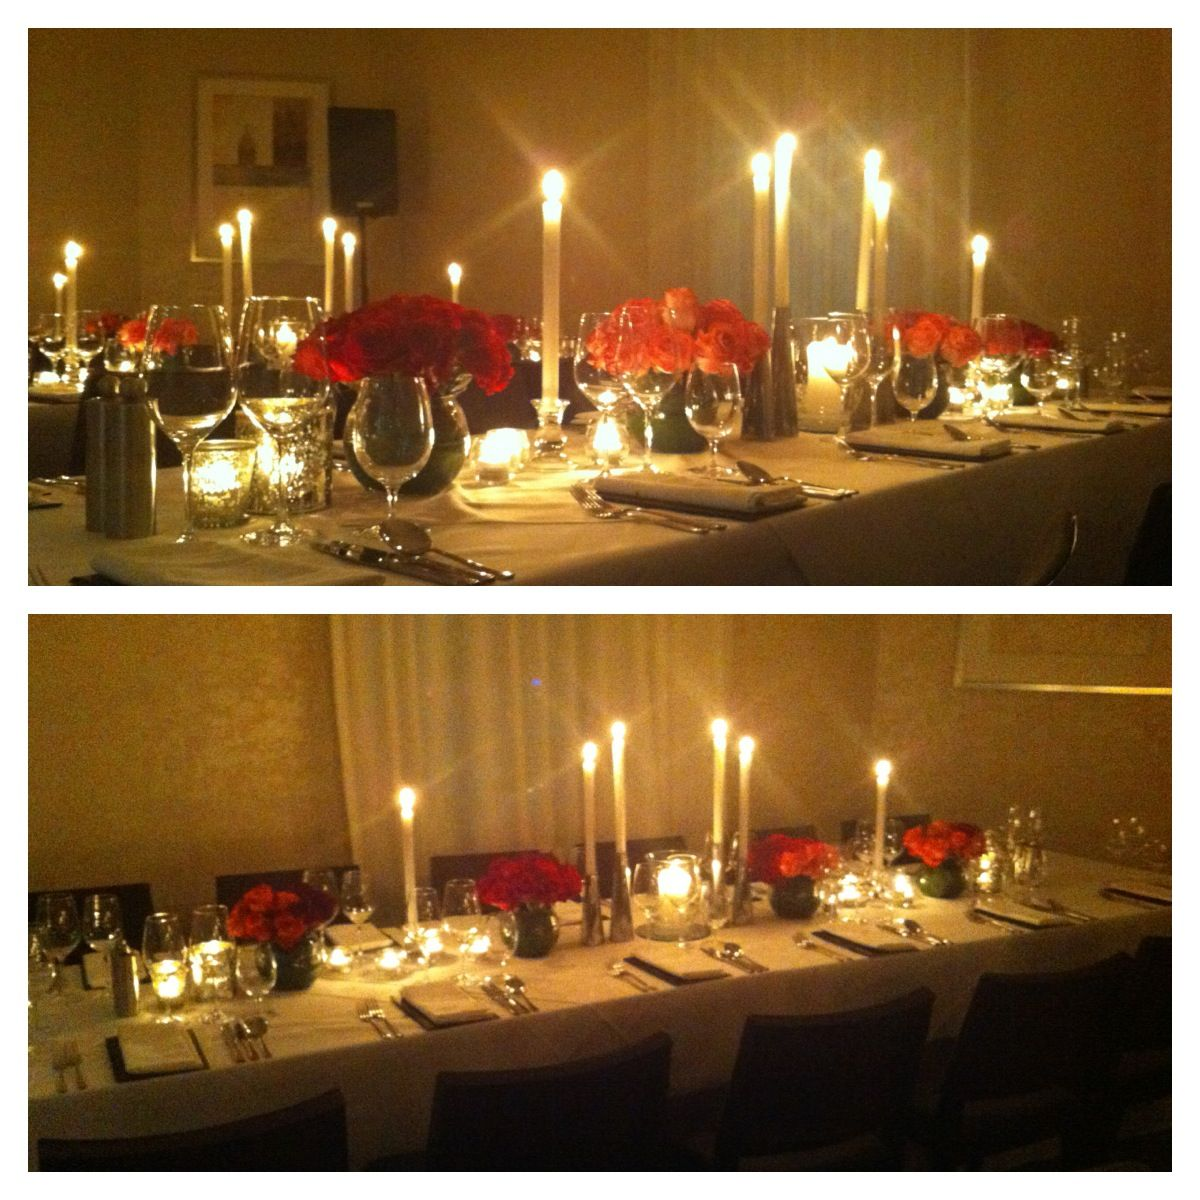 Restaurant table setting ideas - Candles Pink Roses Table Setting Centrepiece Private Dining Room Birthday Dinner Wedding Eventscene Adelaide Chianti